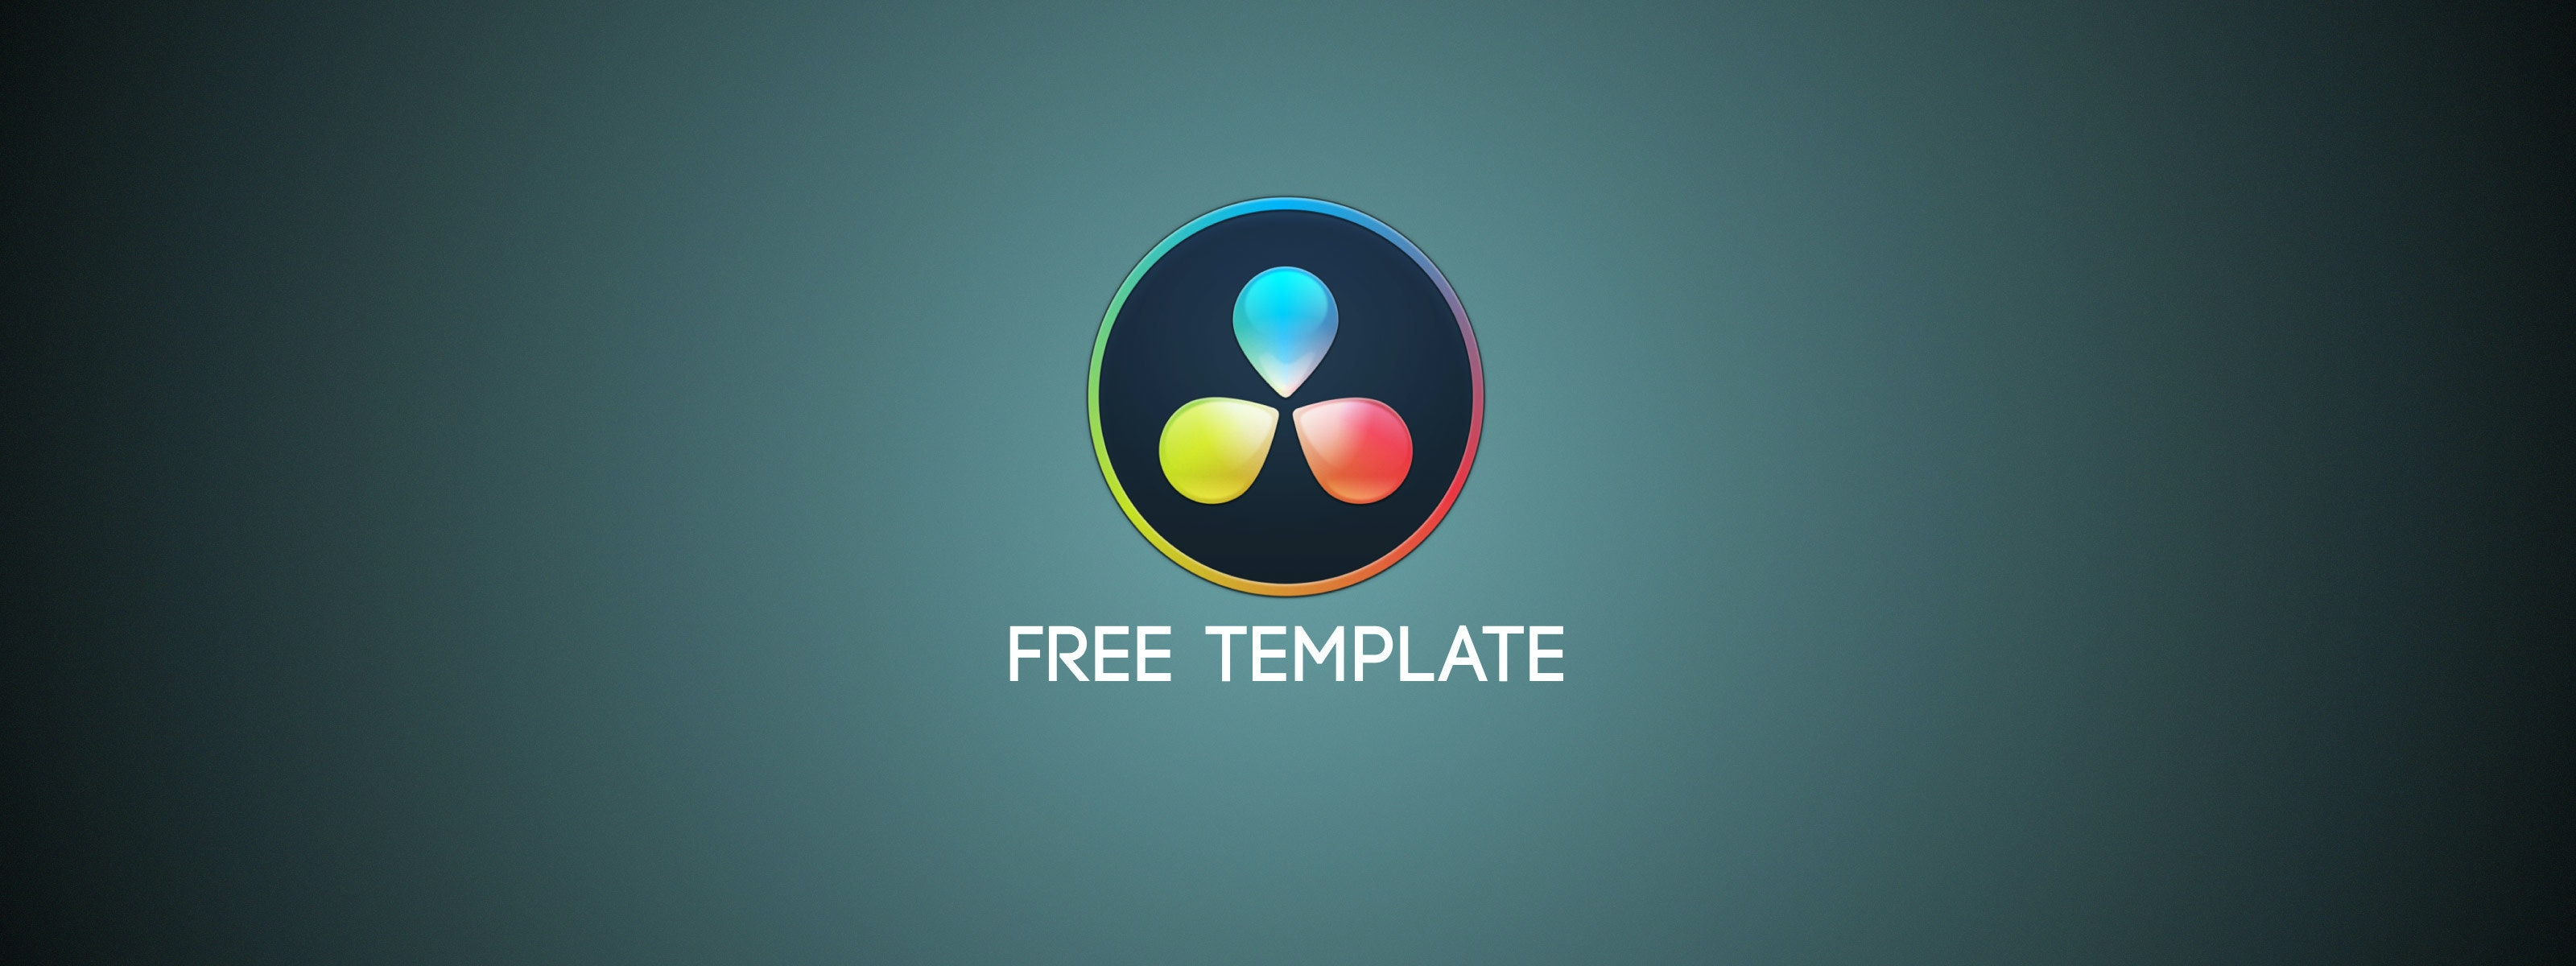 FREE DaVinci Resolve Title Template | Motion Array